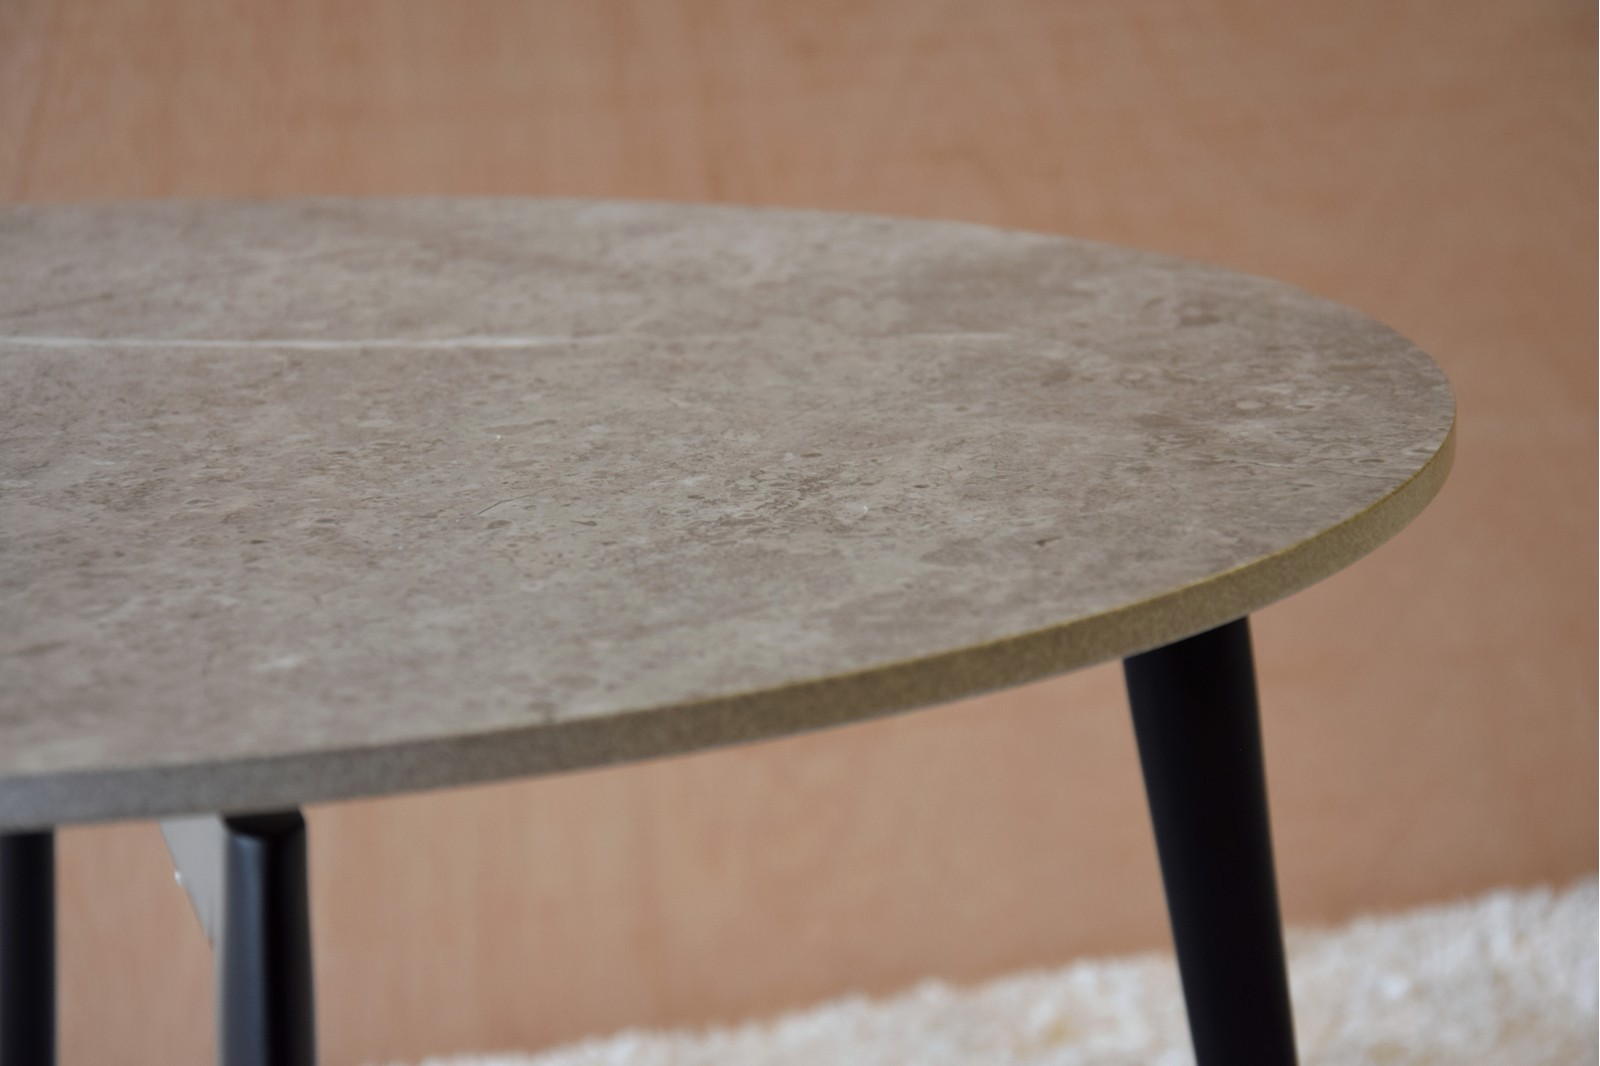 ROUND SIDE TABLE. CERAMIC AND METAL